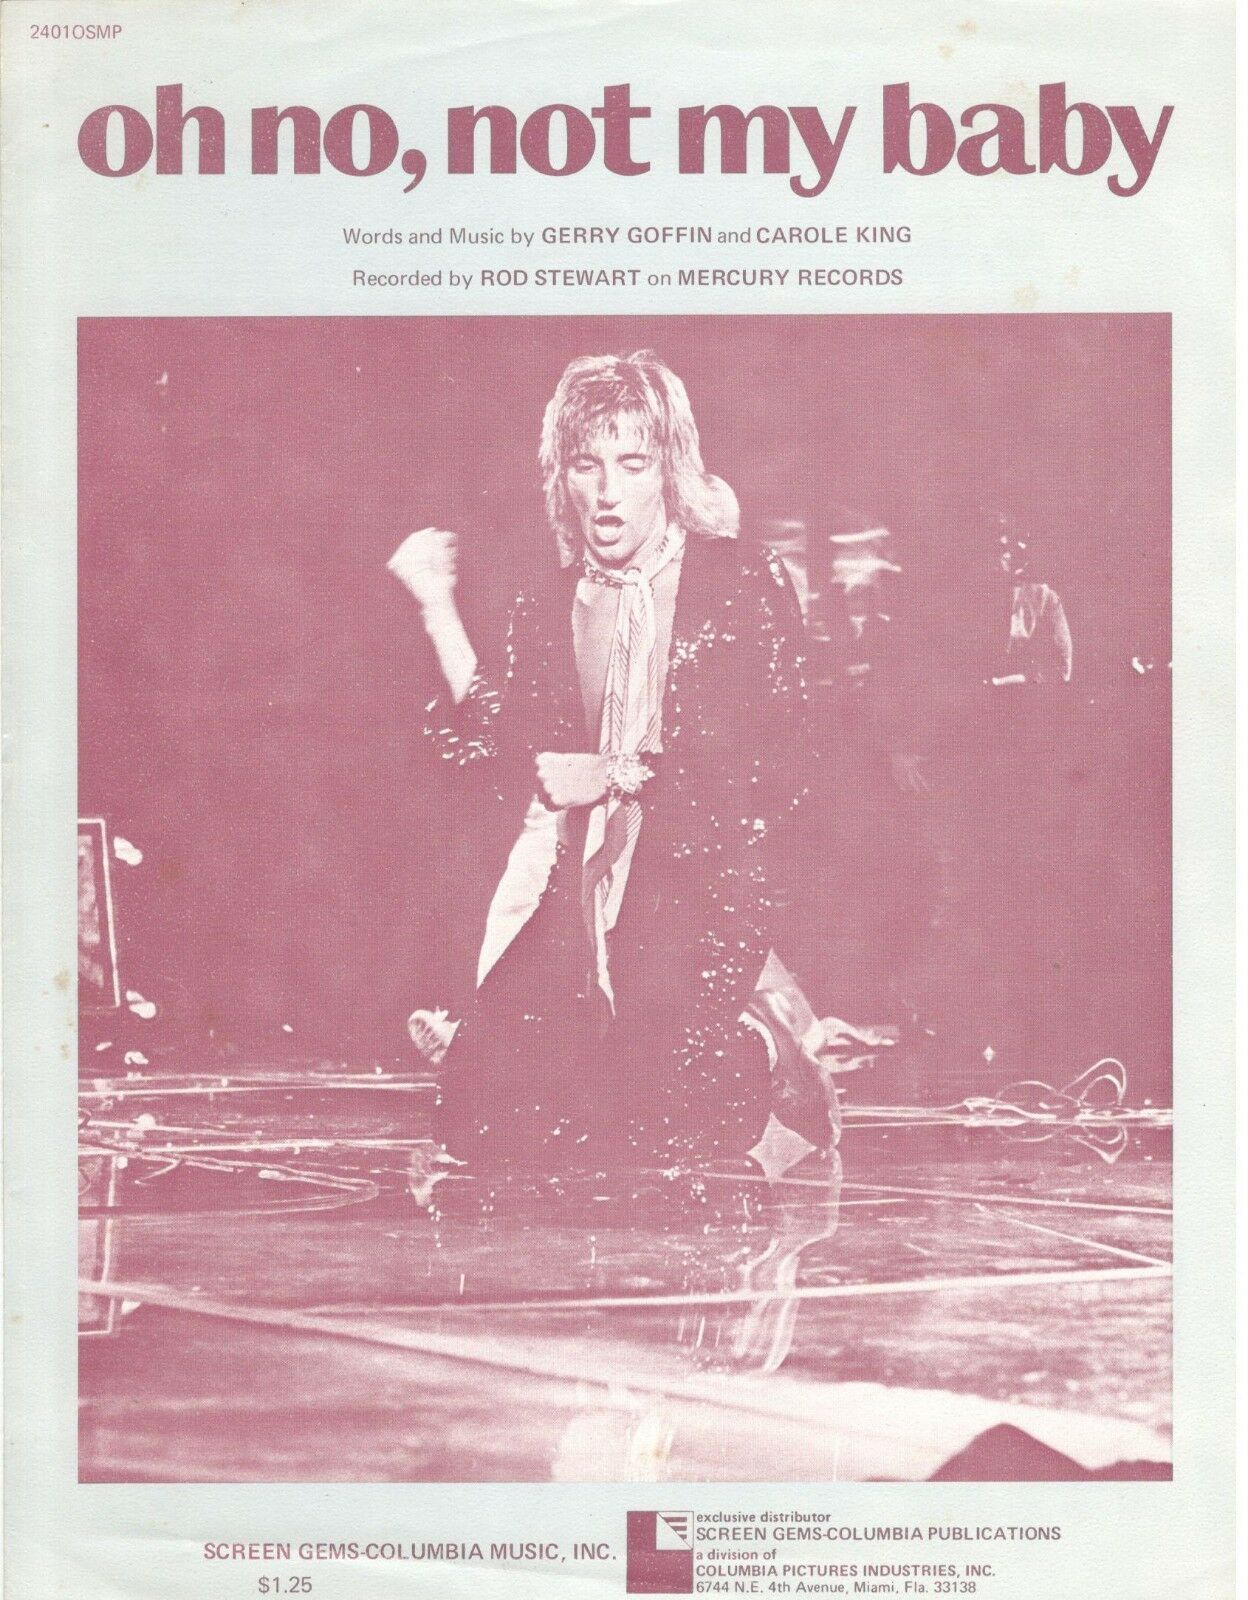 ROD STEWART  OH NO, NOT MY BABY  SHEET MUSIC-PIANO VOCAL GUITAR CHORDS-RARE-NEW